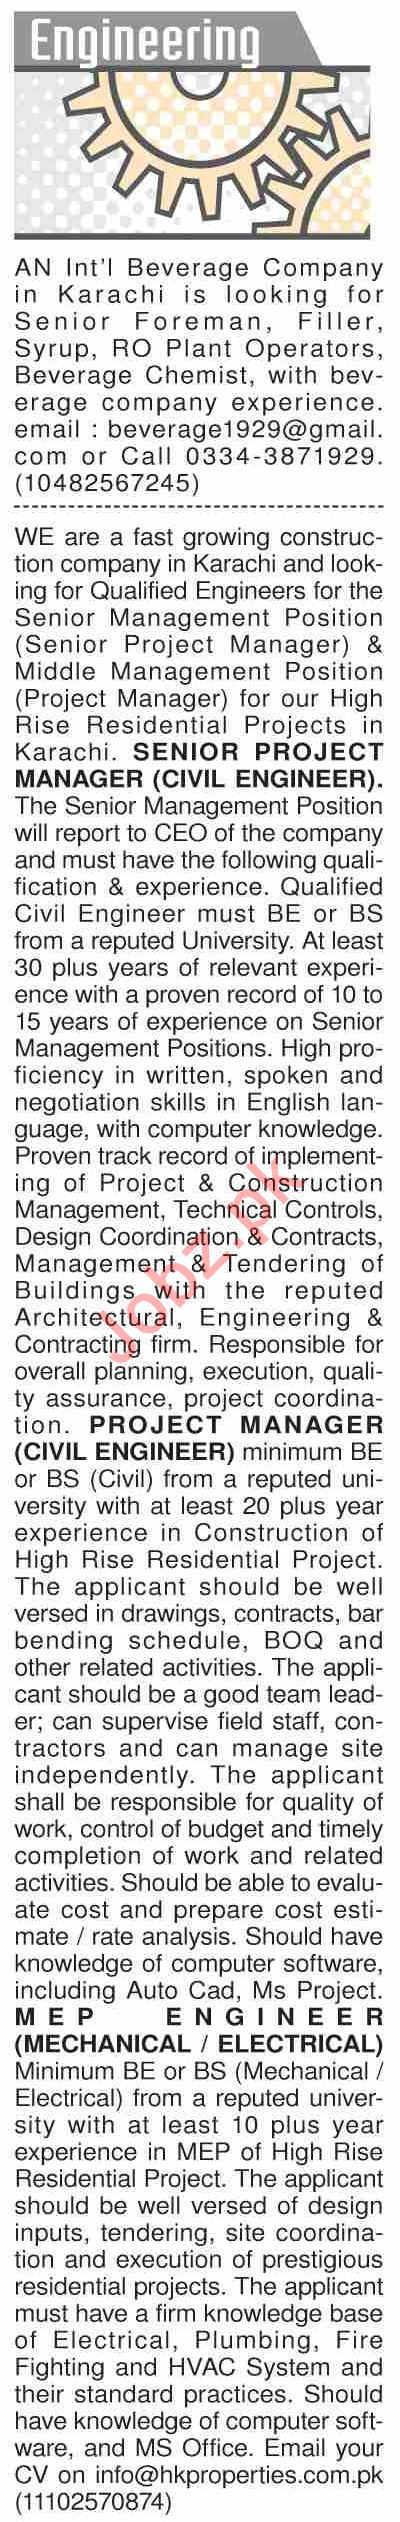 Dawn Sunday Classified Ads 20th Oct 2019 for Engineering